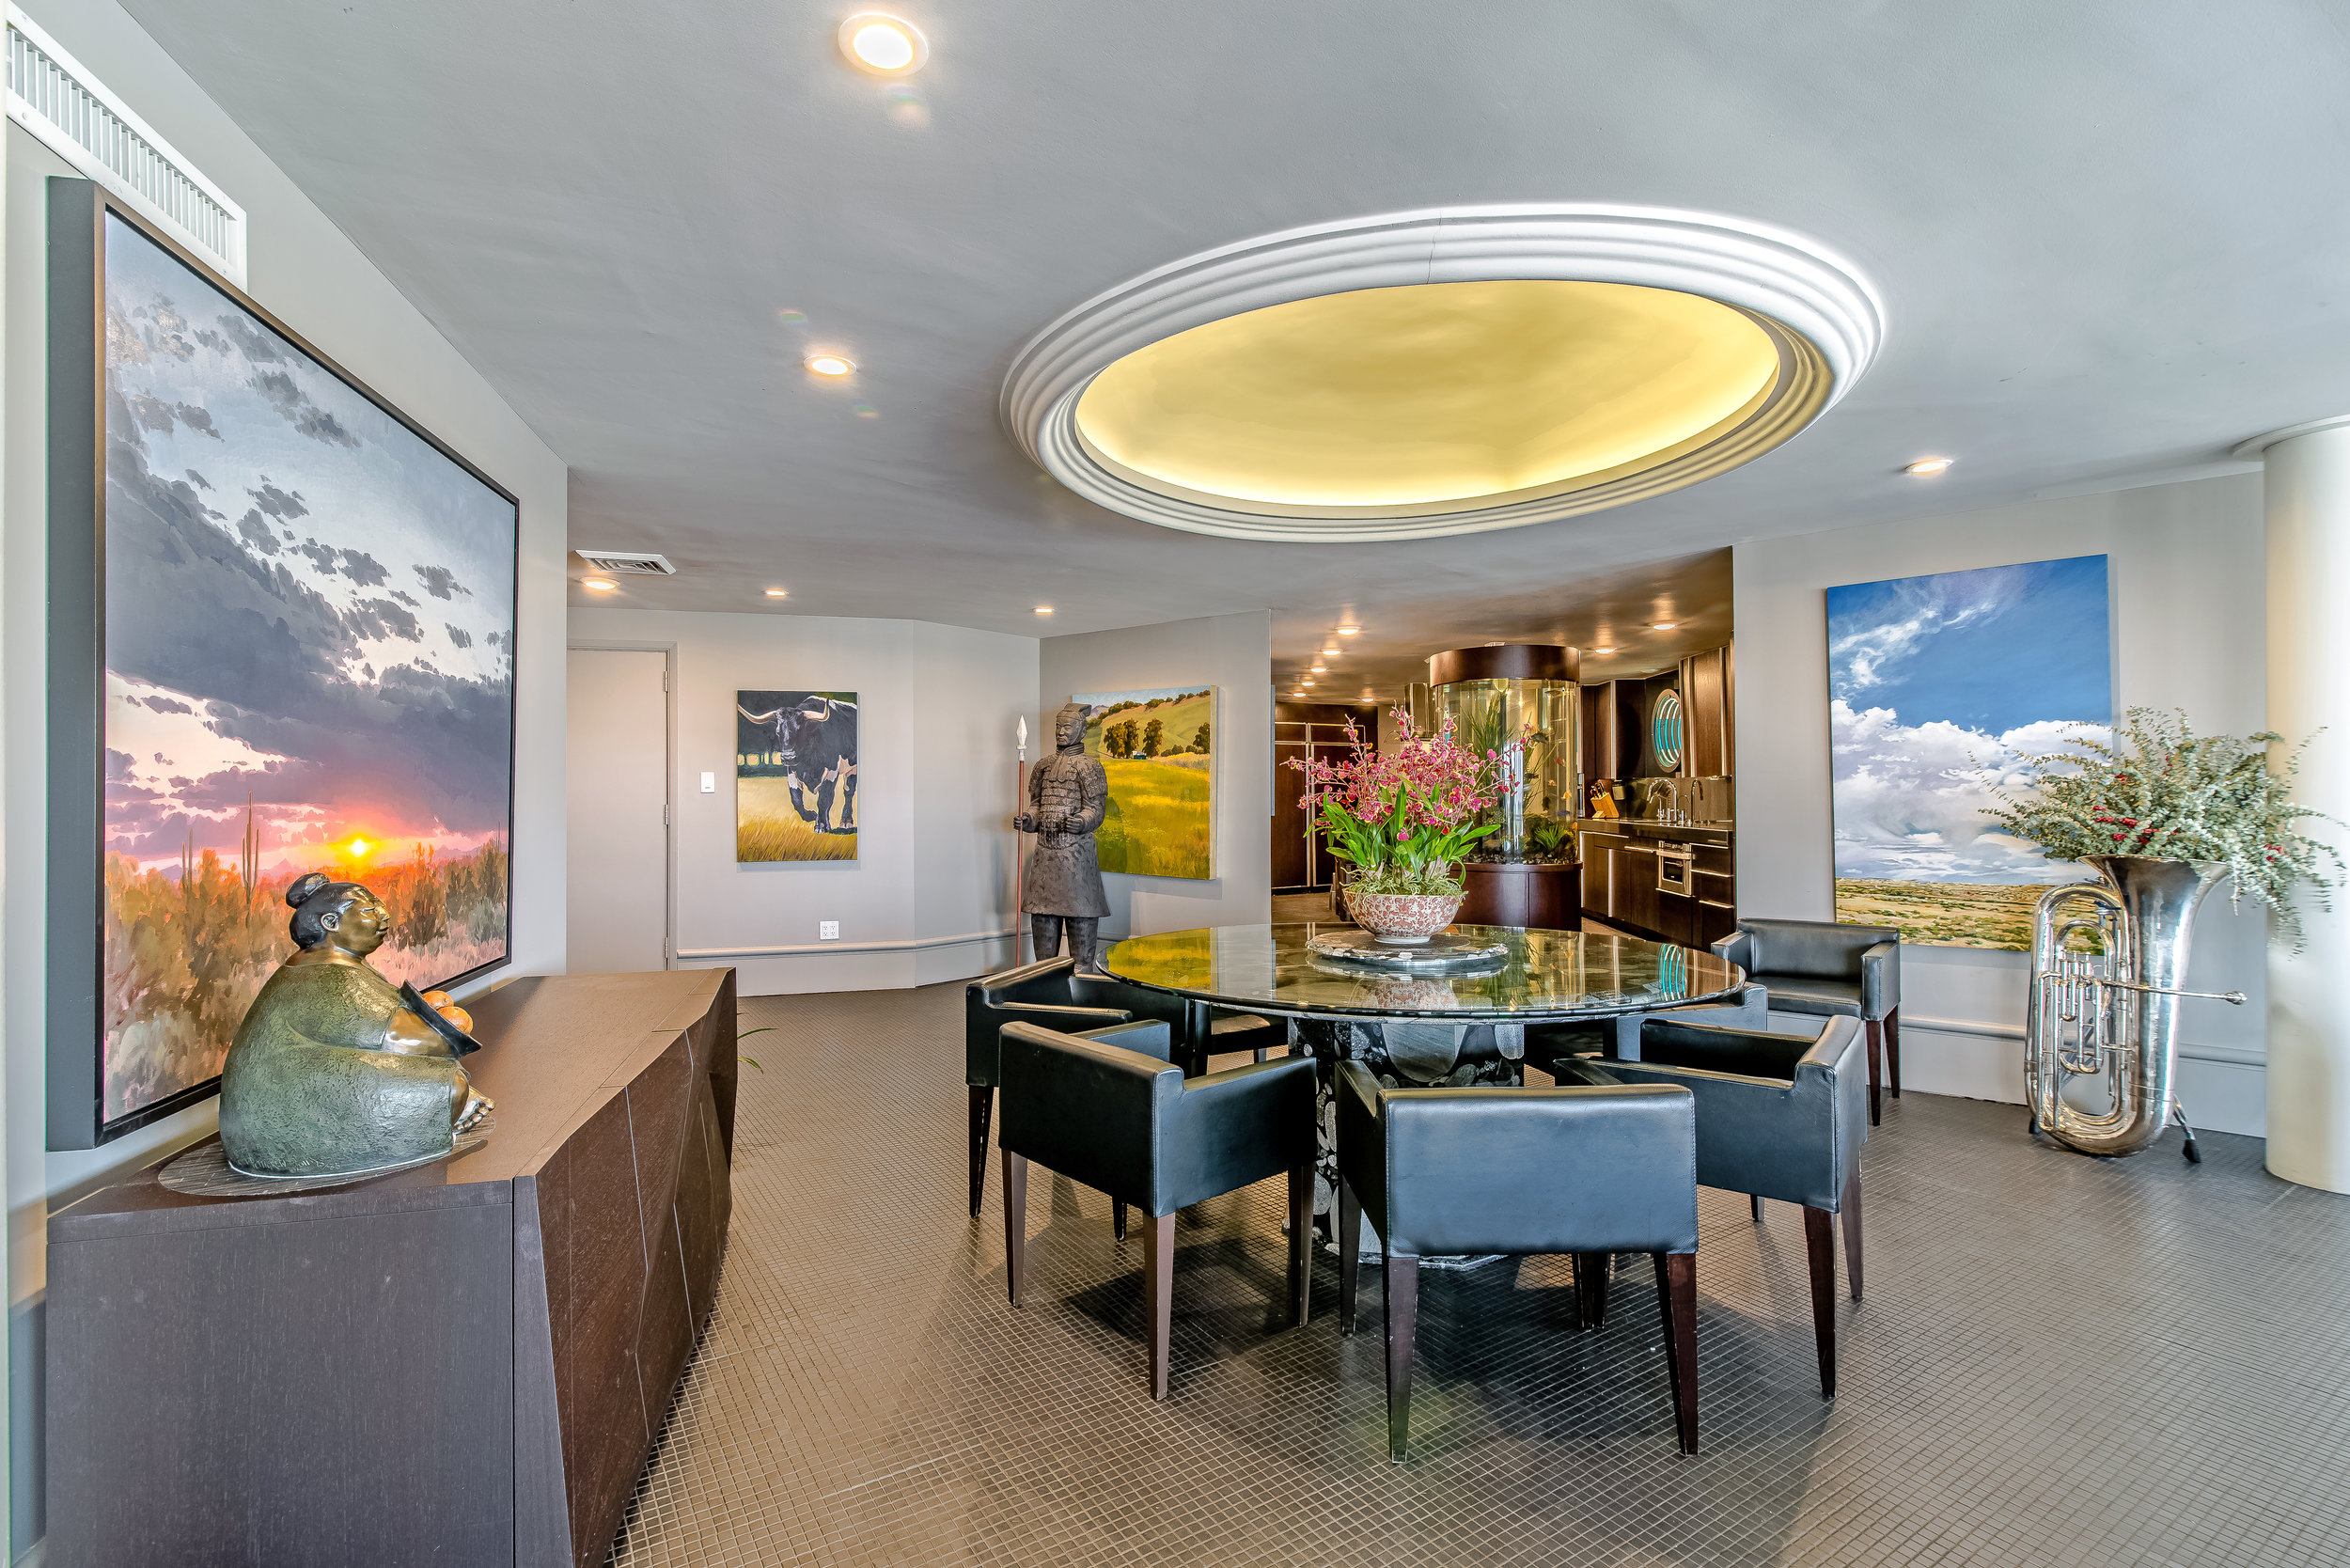 LUXURY HIGHRISE CONDO WOODWAY HOUSTON TEXAS 77056.jpg